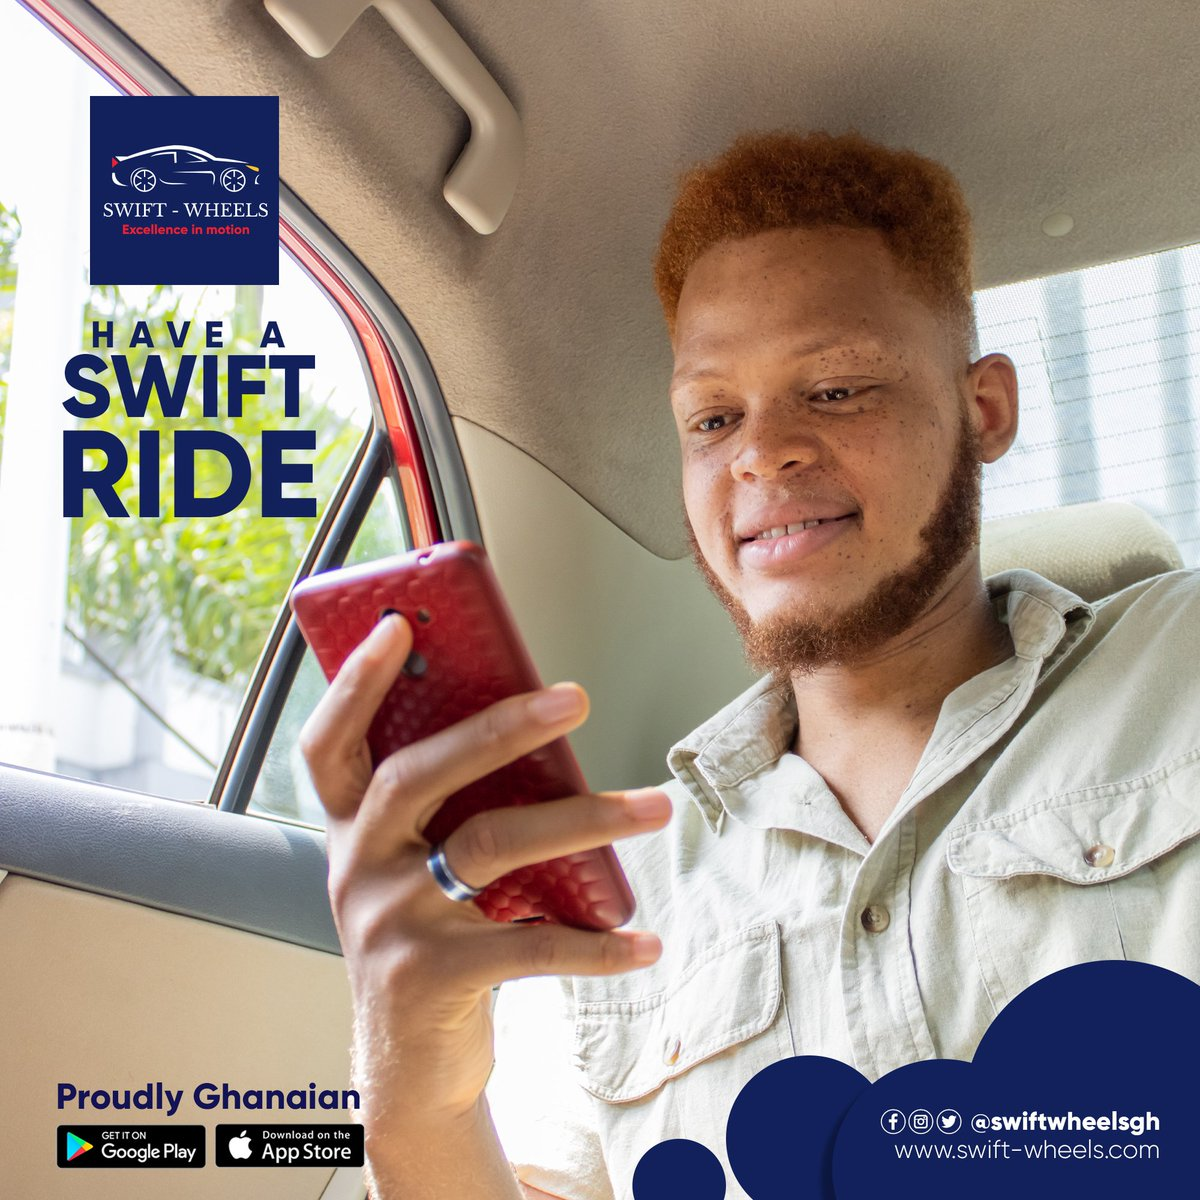 With swift wheels, you are a priority! An affiliate! You are family! Join the winning team! Download the swift wheels app from play store or app store and ride in comfort.  #ghana #accra #love #BBNaijialockdown2020   #ghanaian  #afrobeat #african #ghanaweddings #bhfyppic.twitter.com/bn3bUoBLKK